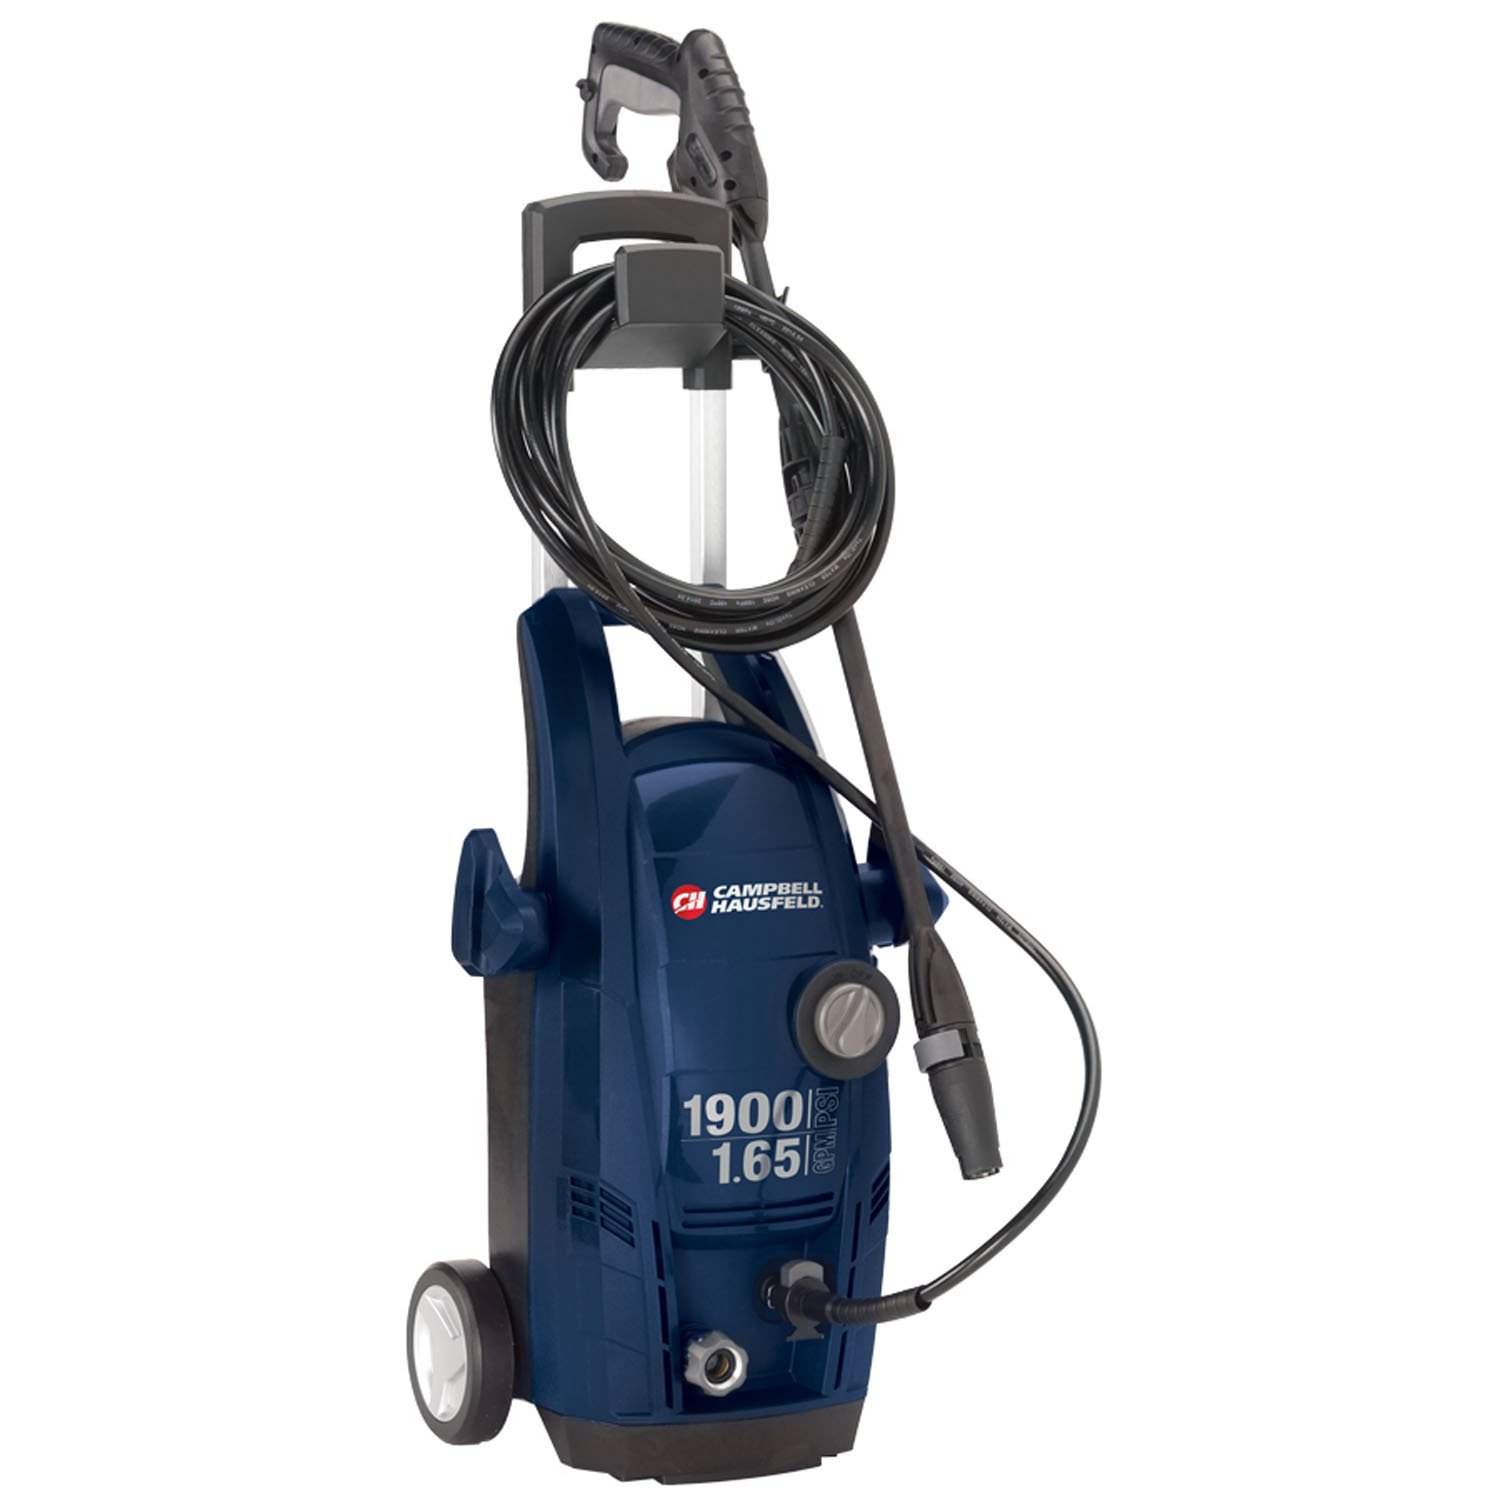 Campbell Hausfeld PW182501AV Electric Pressure Washer, 1900 psi